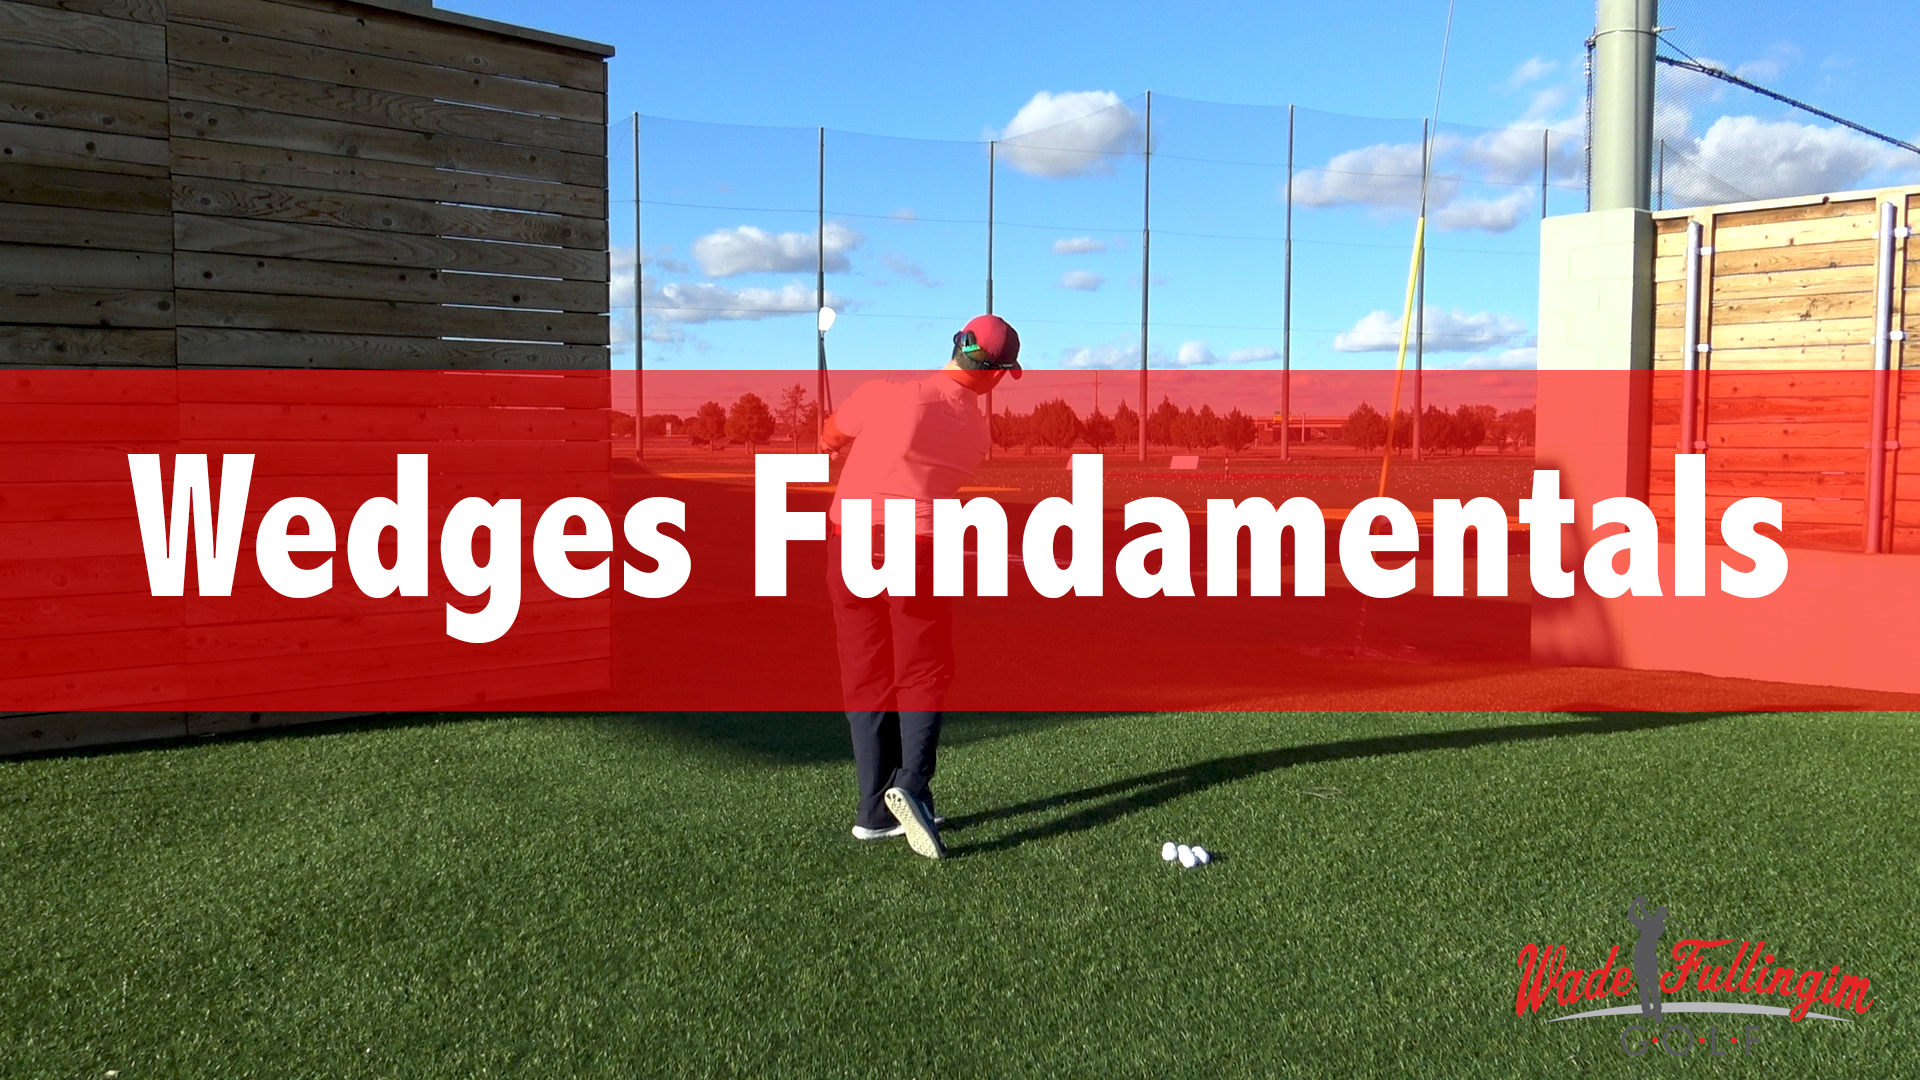 Looking to master wedges from 50 - 120 Yards? Start with Wedge Fundamentals!  Published November 29th, 2018